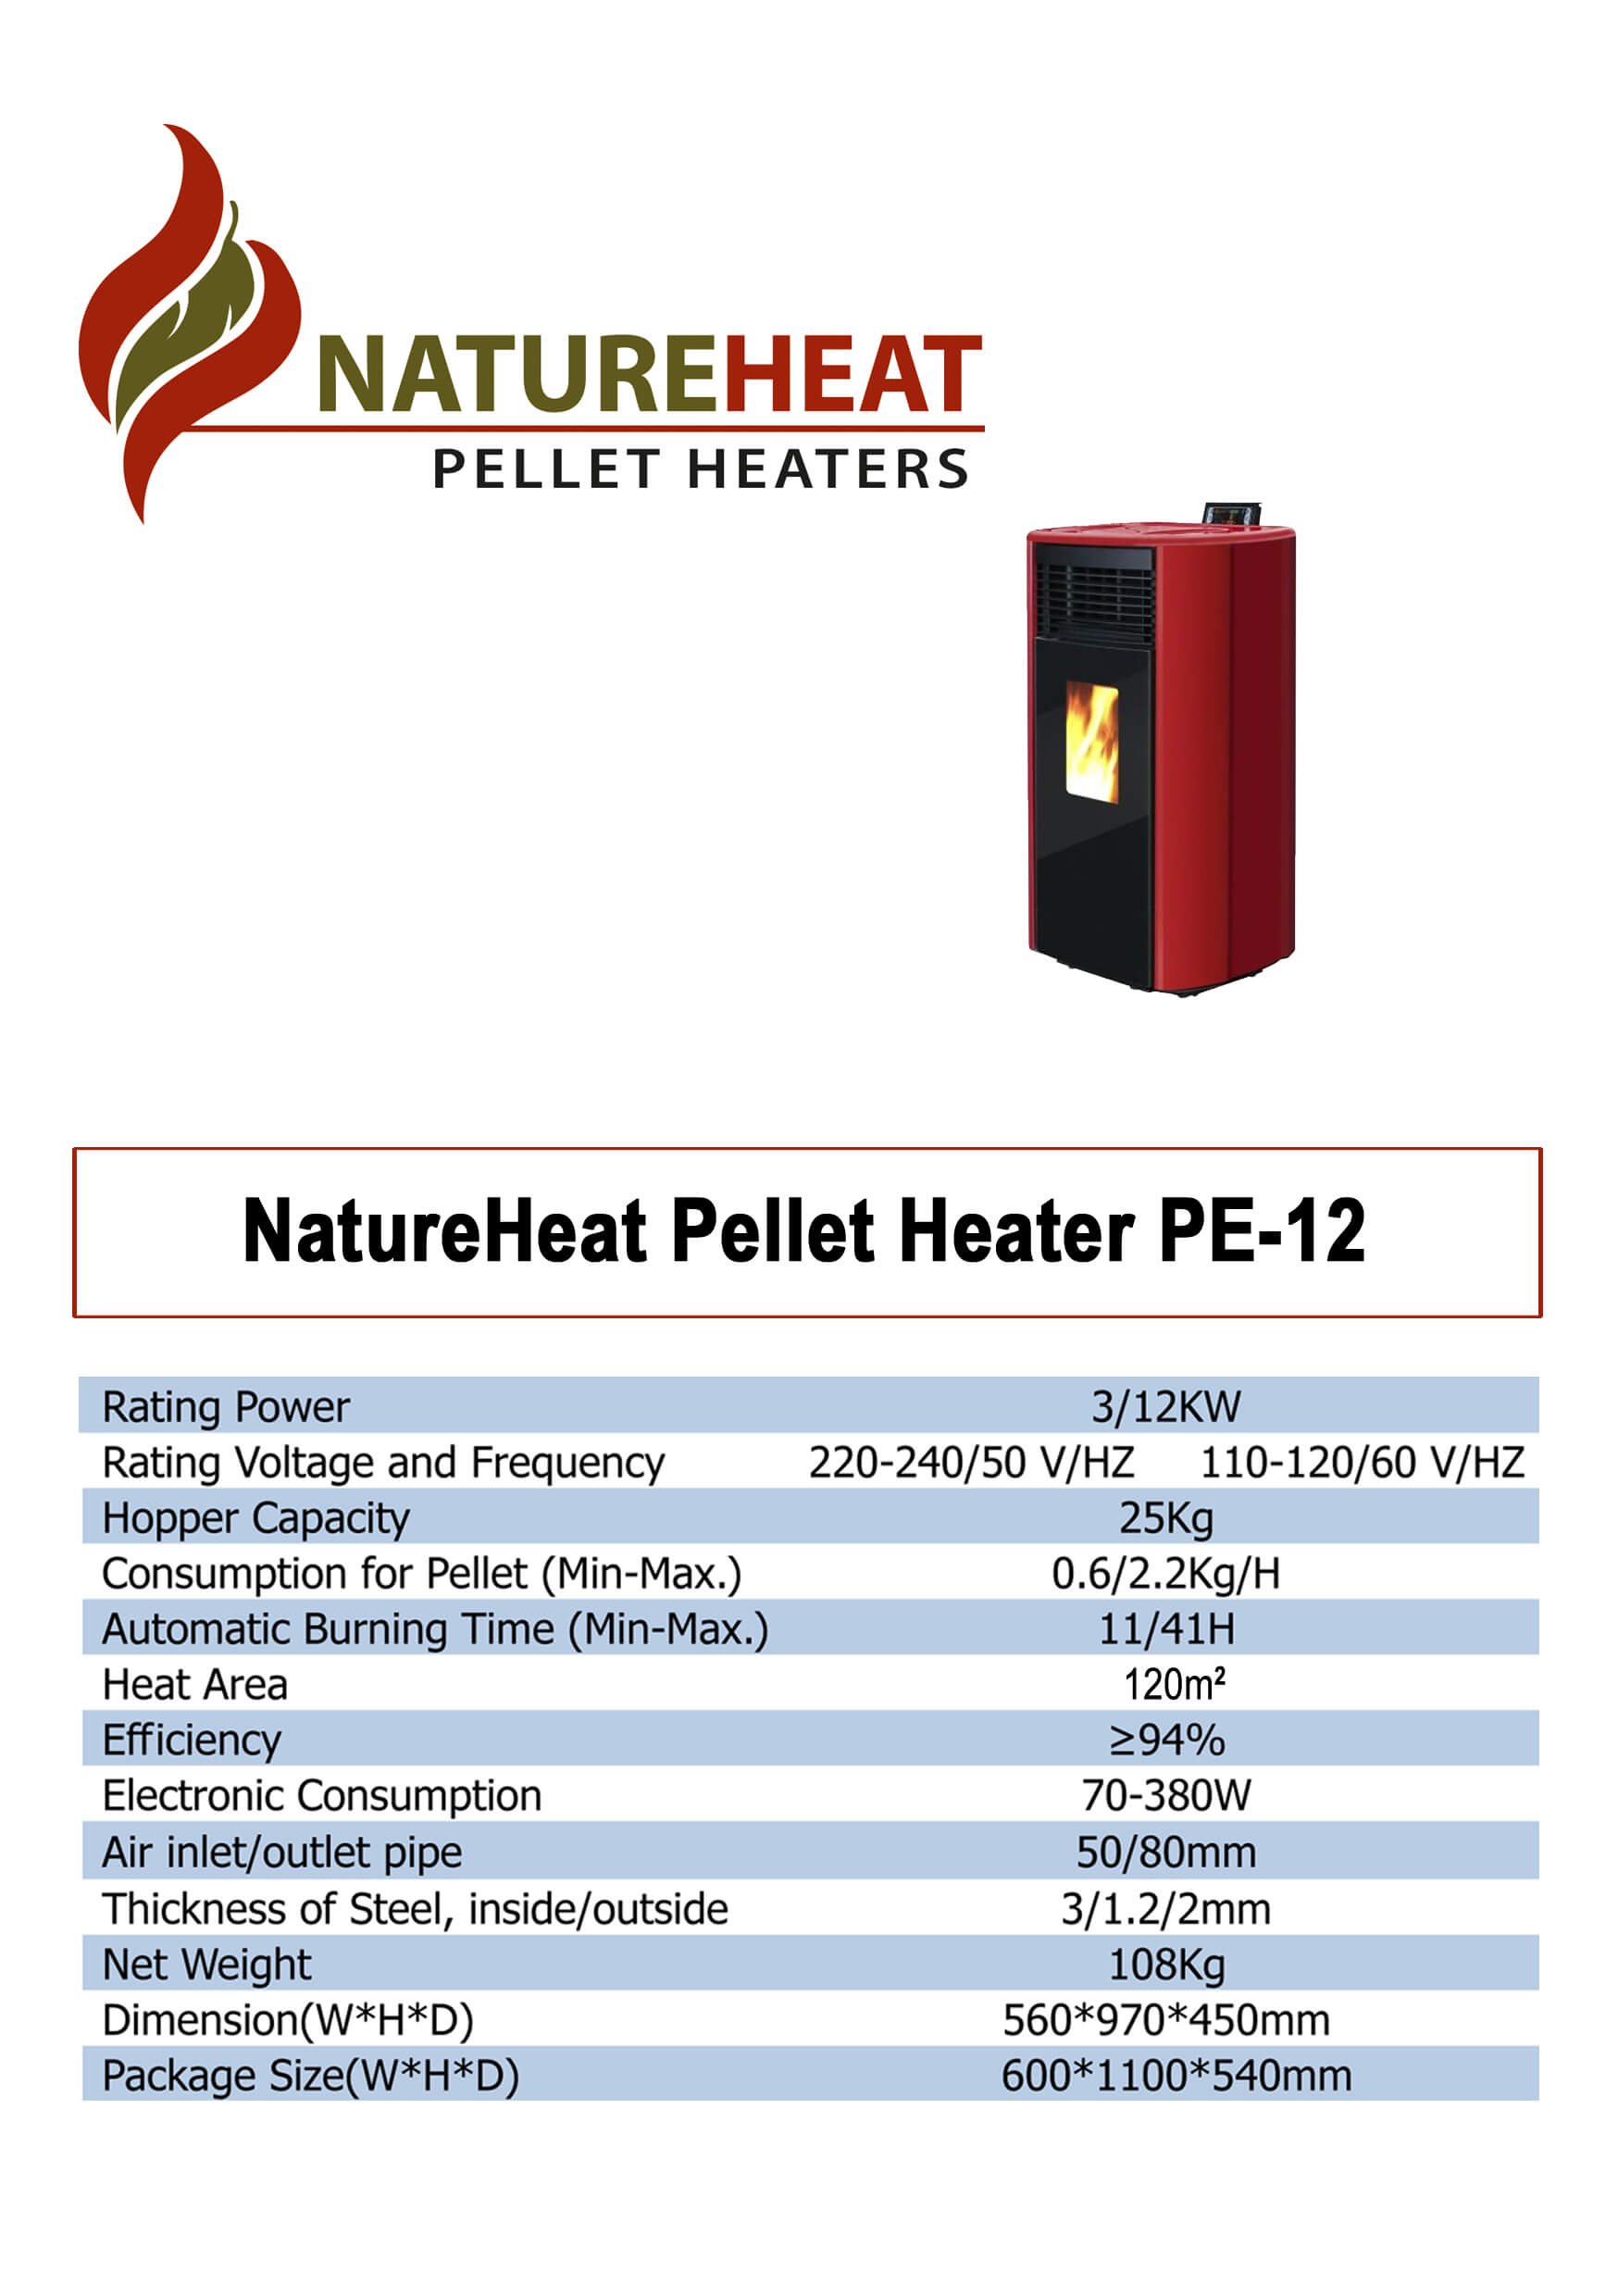 NatureHeat Pellet Heater PE-12